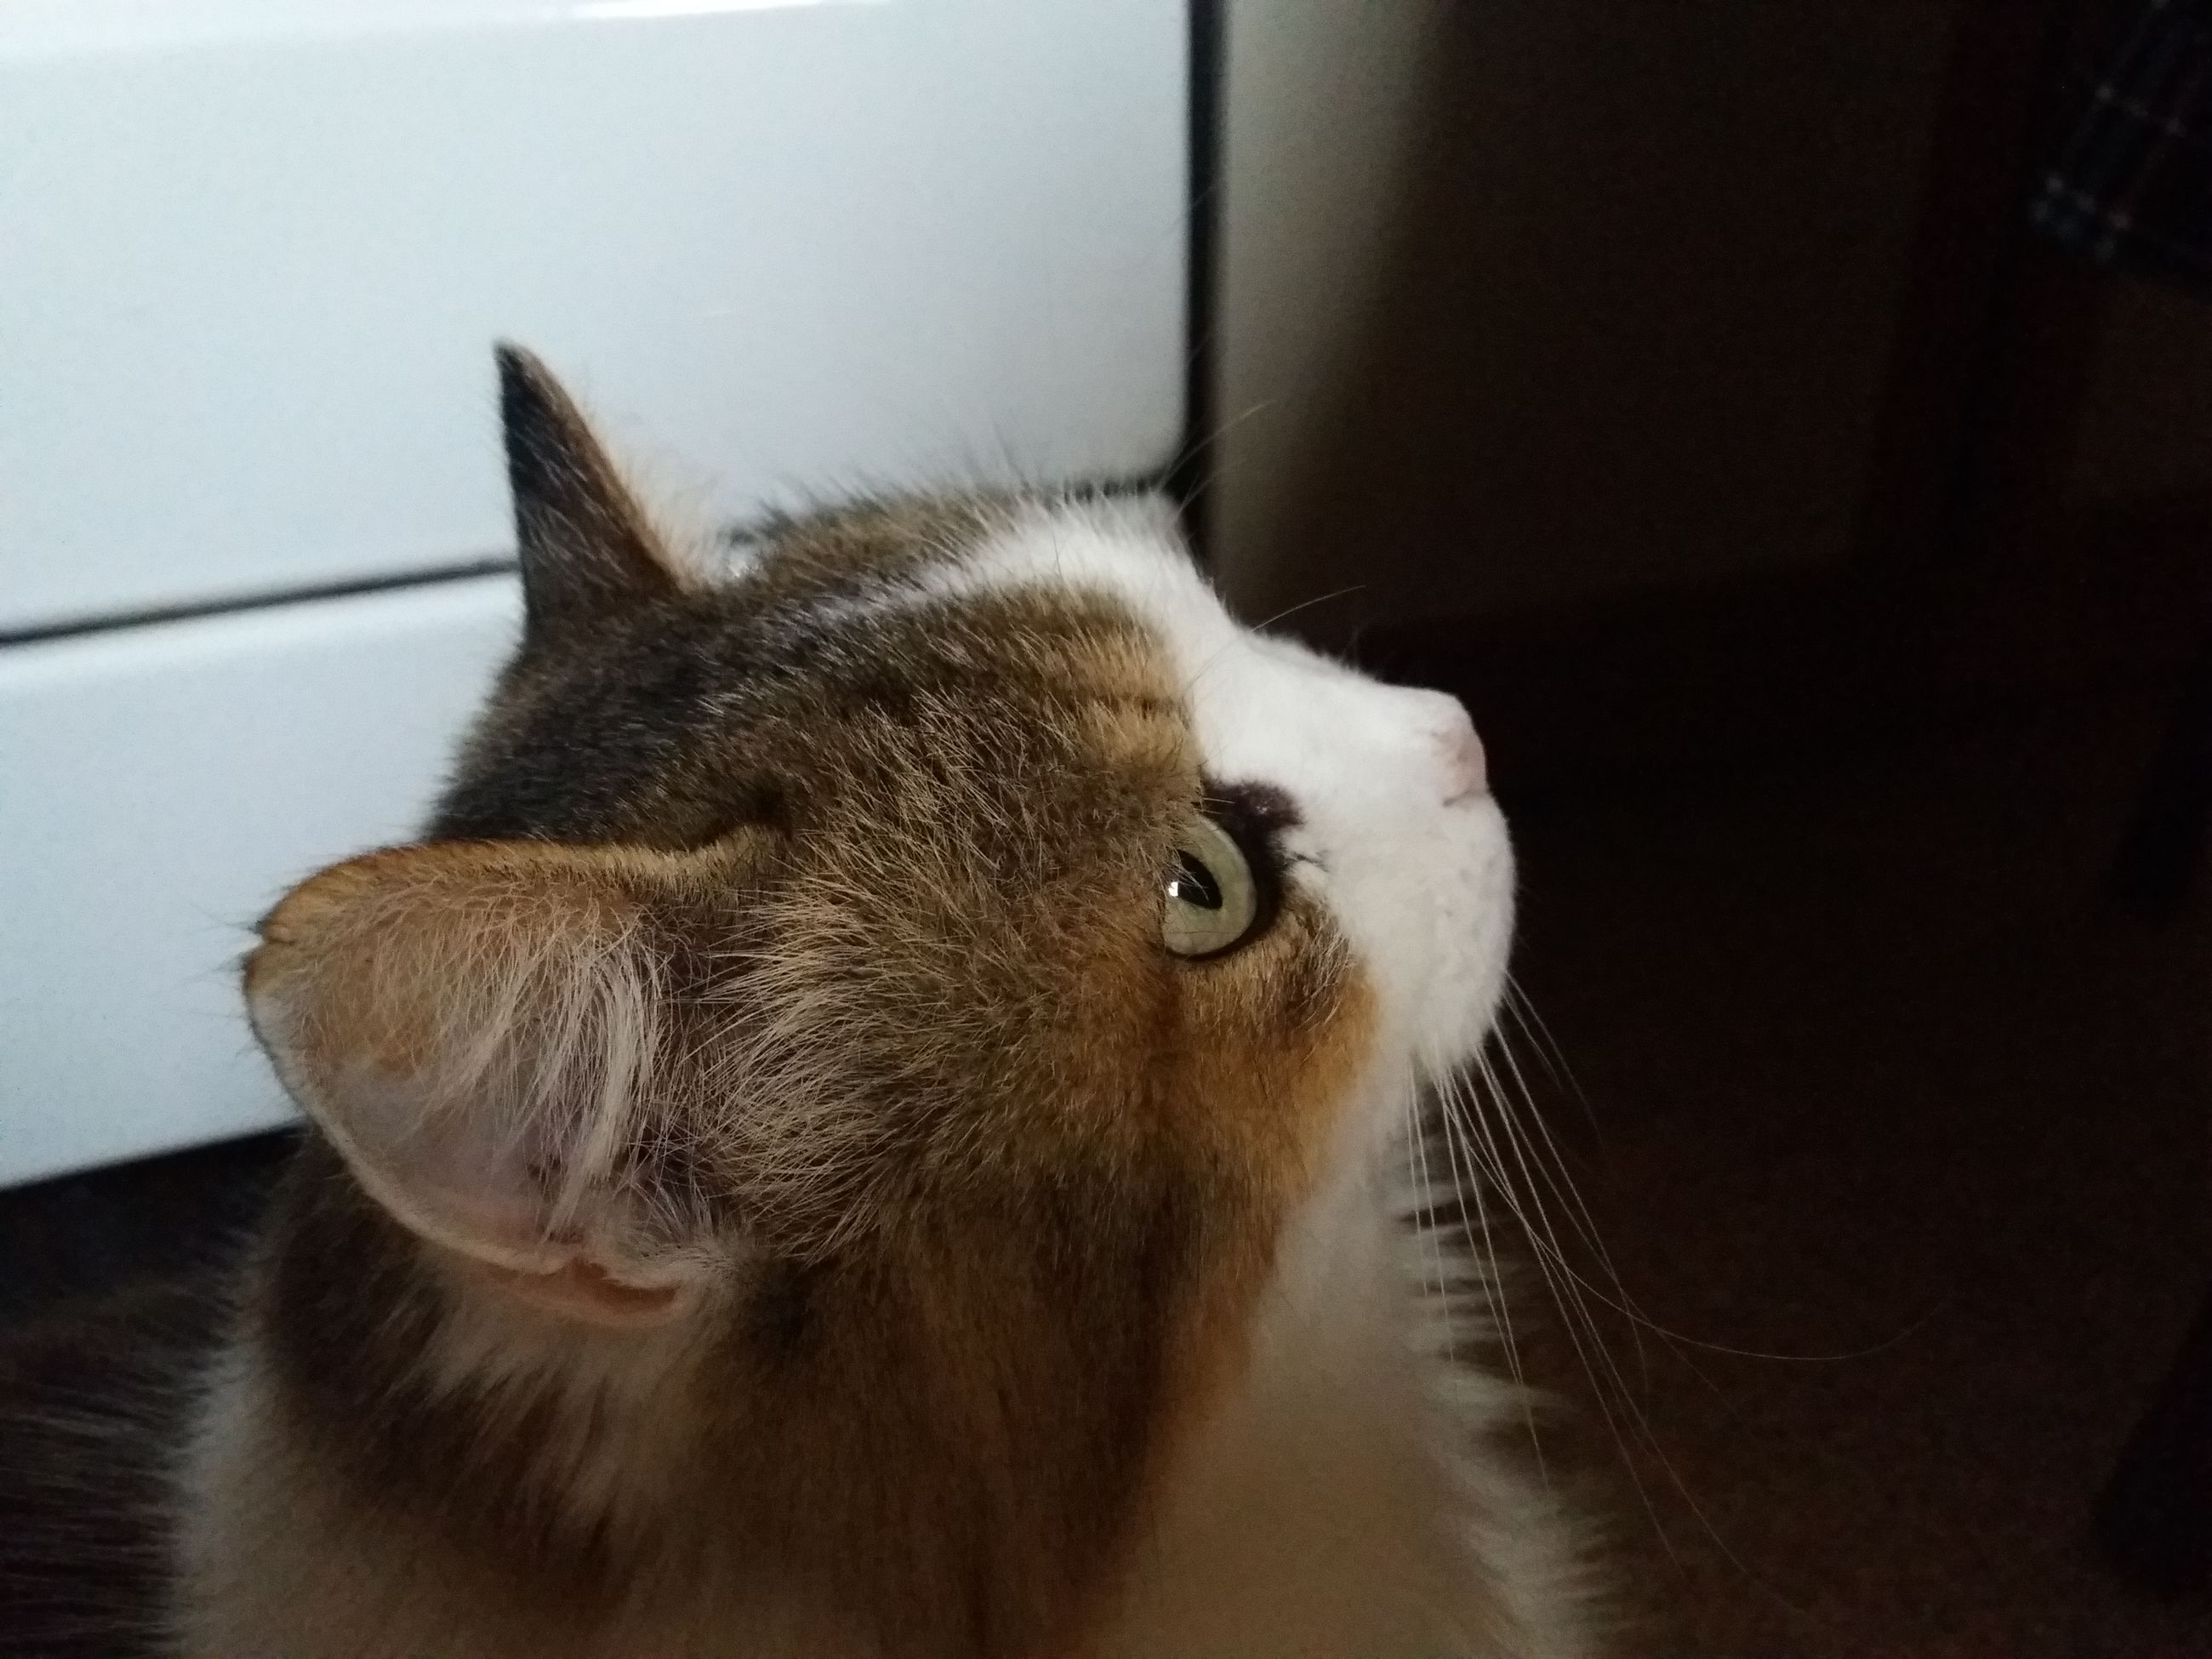 one animal, animal themes, indoors, domestic animals, pets, close-up, animal head, mammal, whisker, focus on foreground, curiosity, feline, domestic cat, no people, looking, herbivorous, animal nose, whiskers